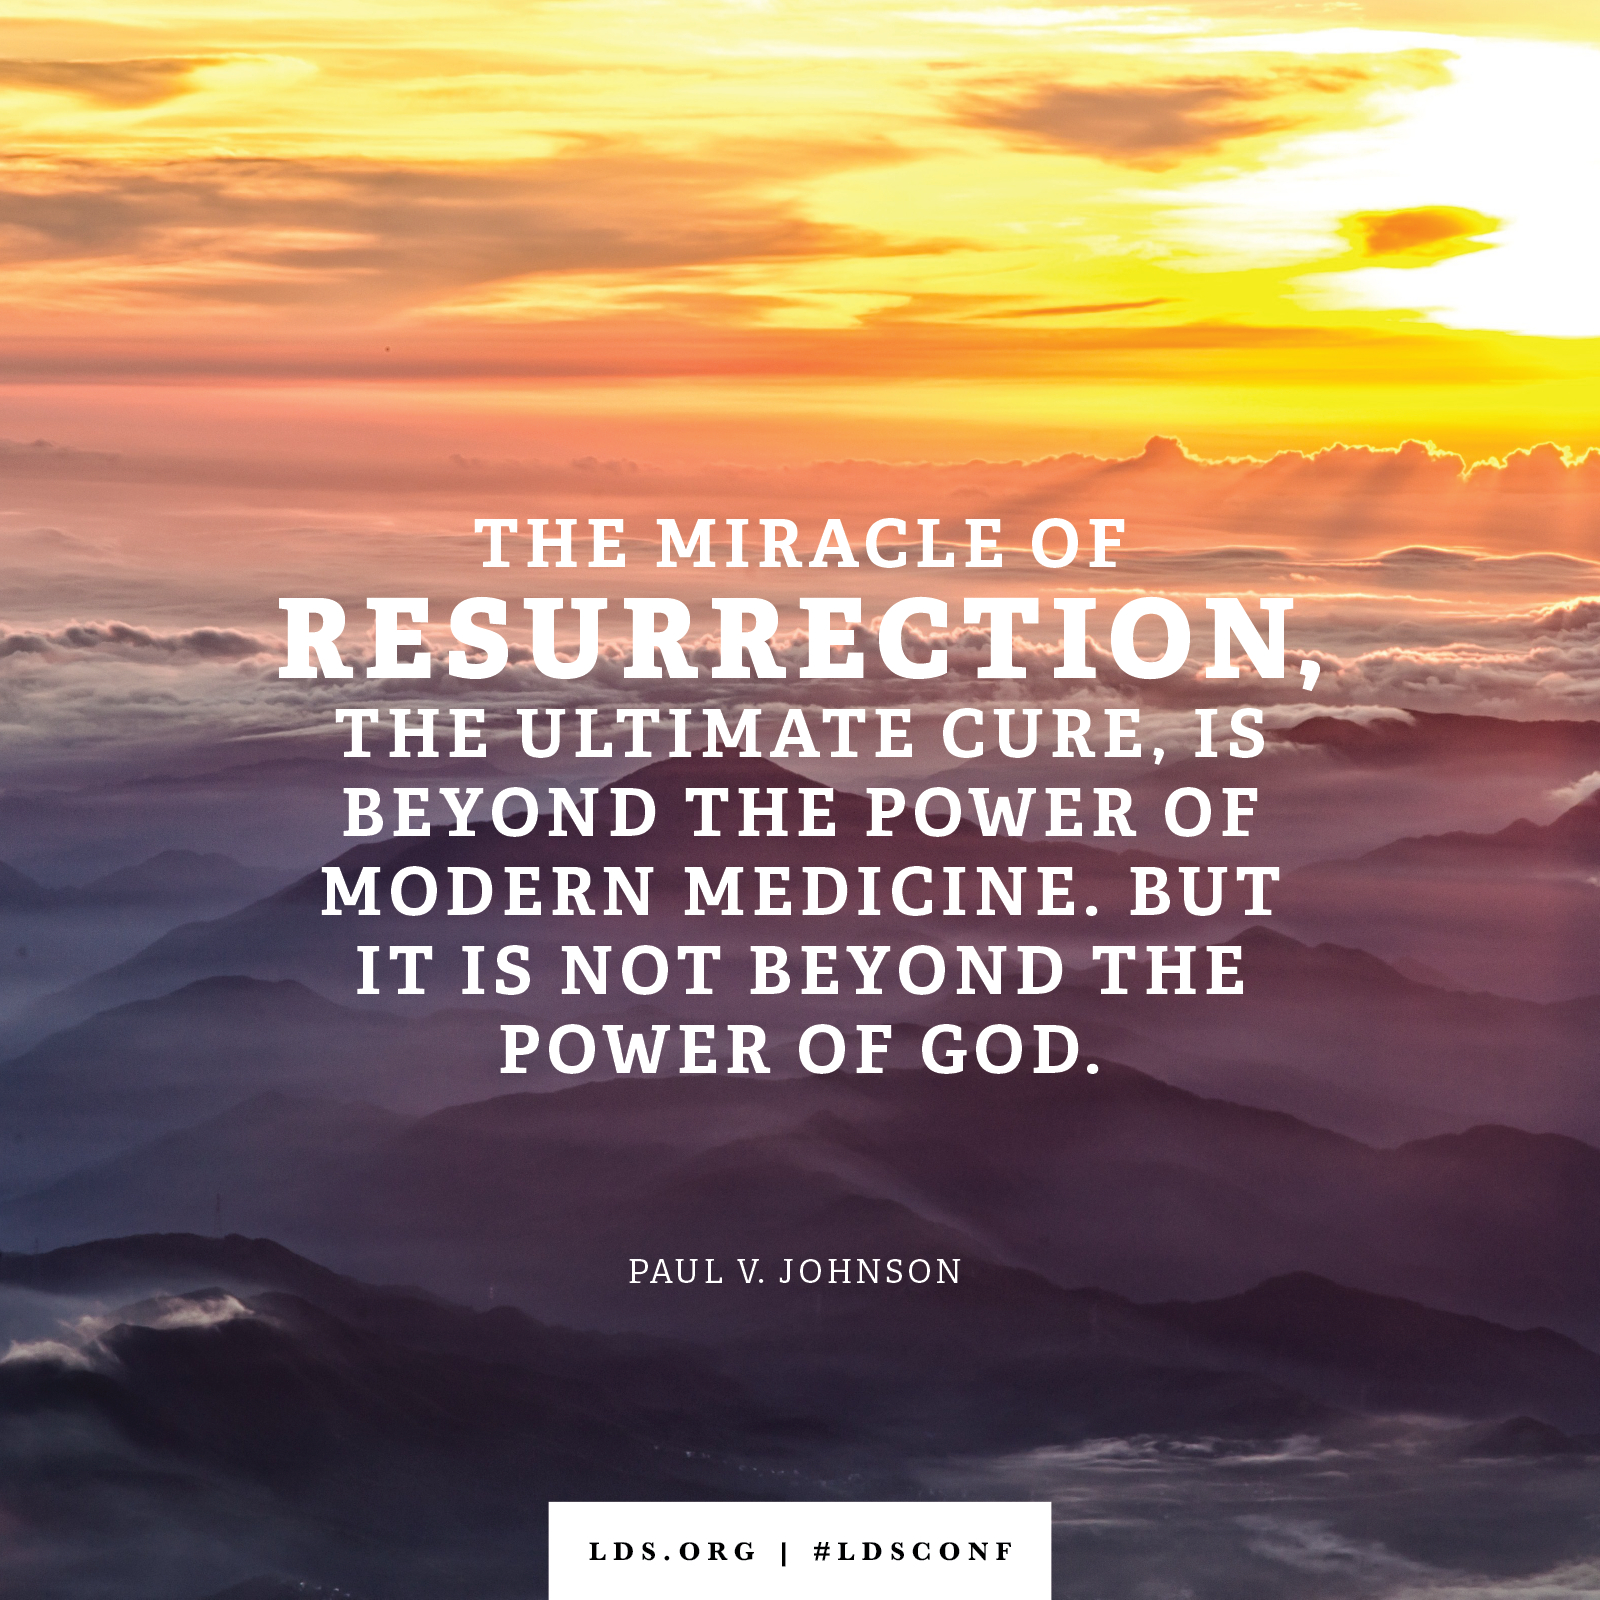 Quotes About The Power Of God: The Miracle Of Resurrection